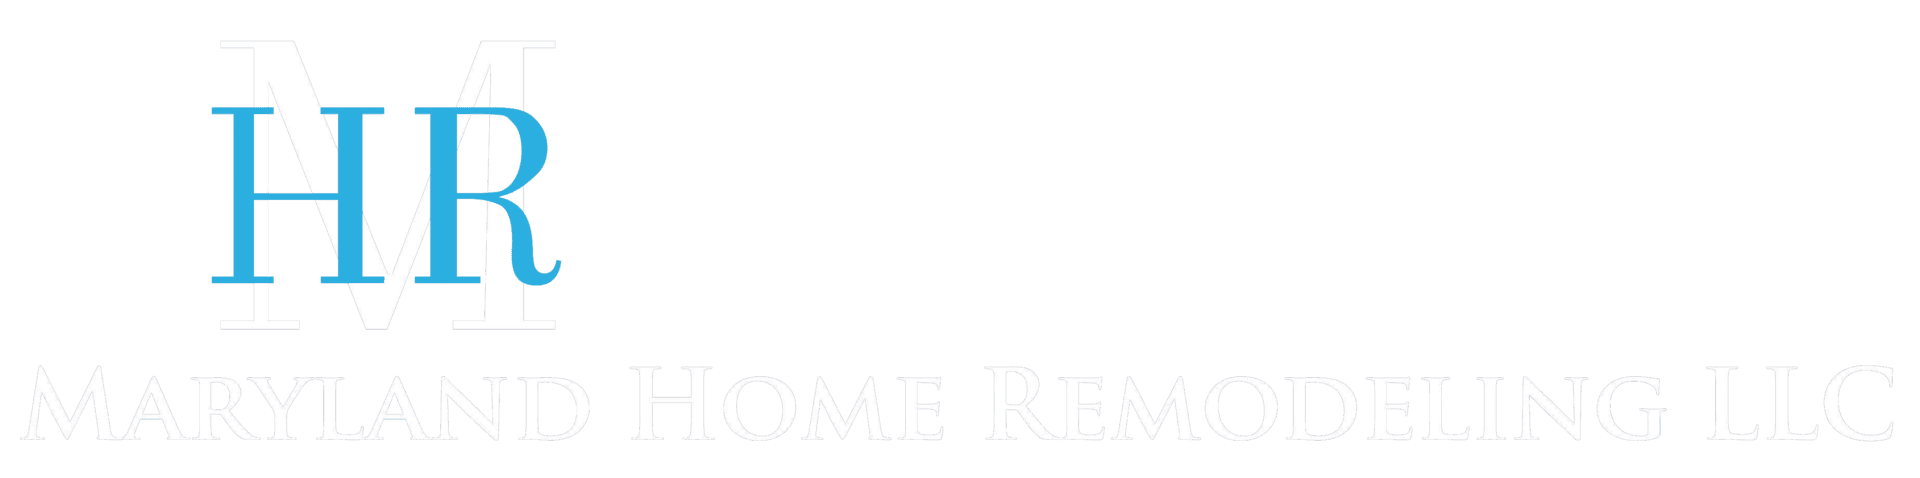 Maryland Home Remodeling LLC - logo